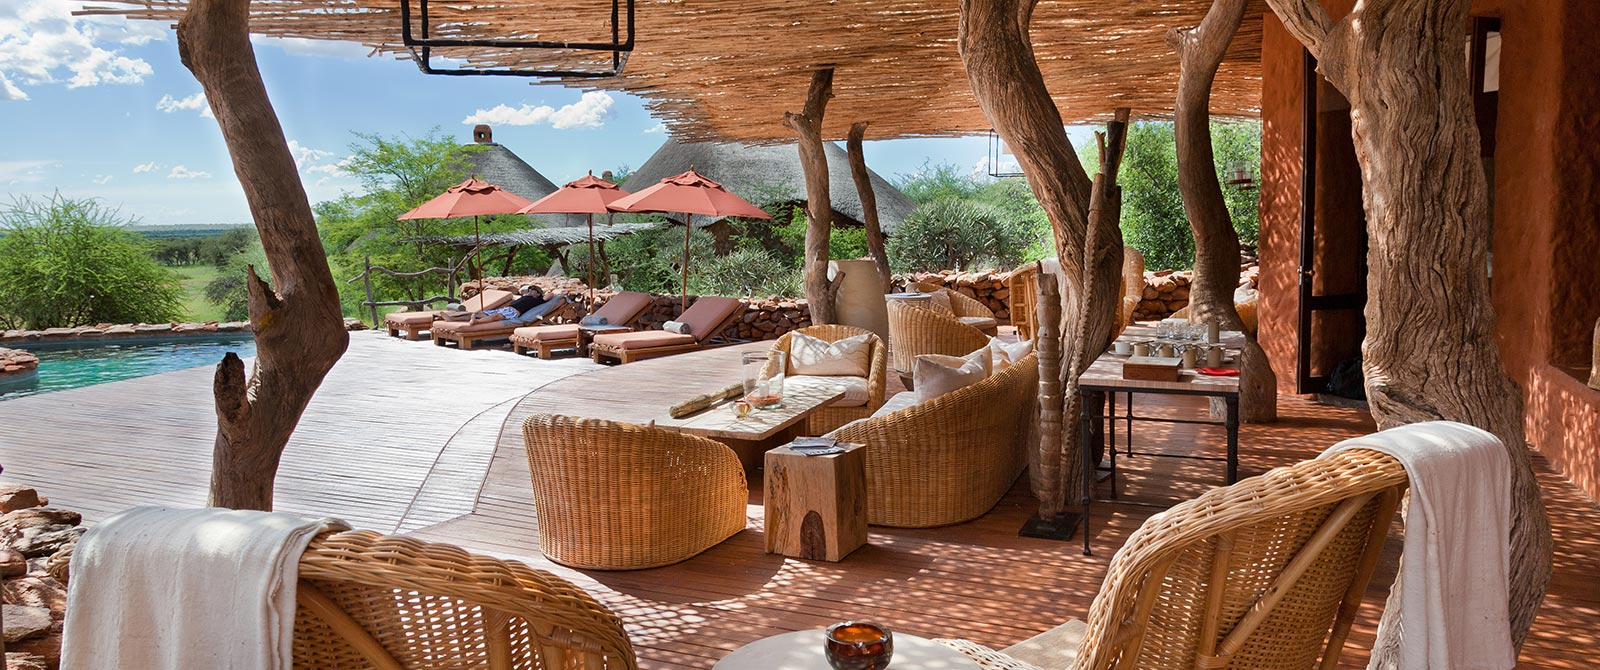 Tswalu Motse Safari Lodge Deck and Pool - Cape Town Explorer and Family Safari Adventure